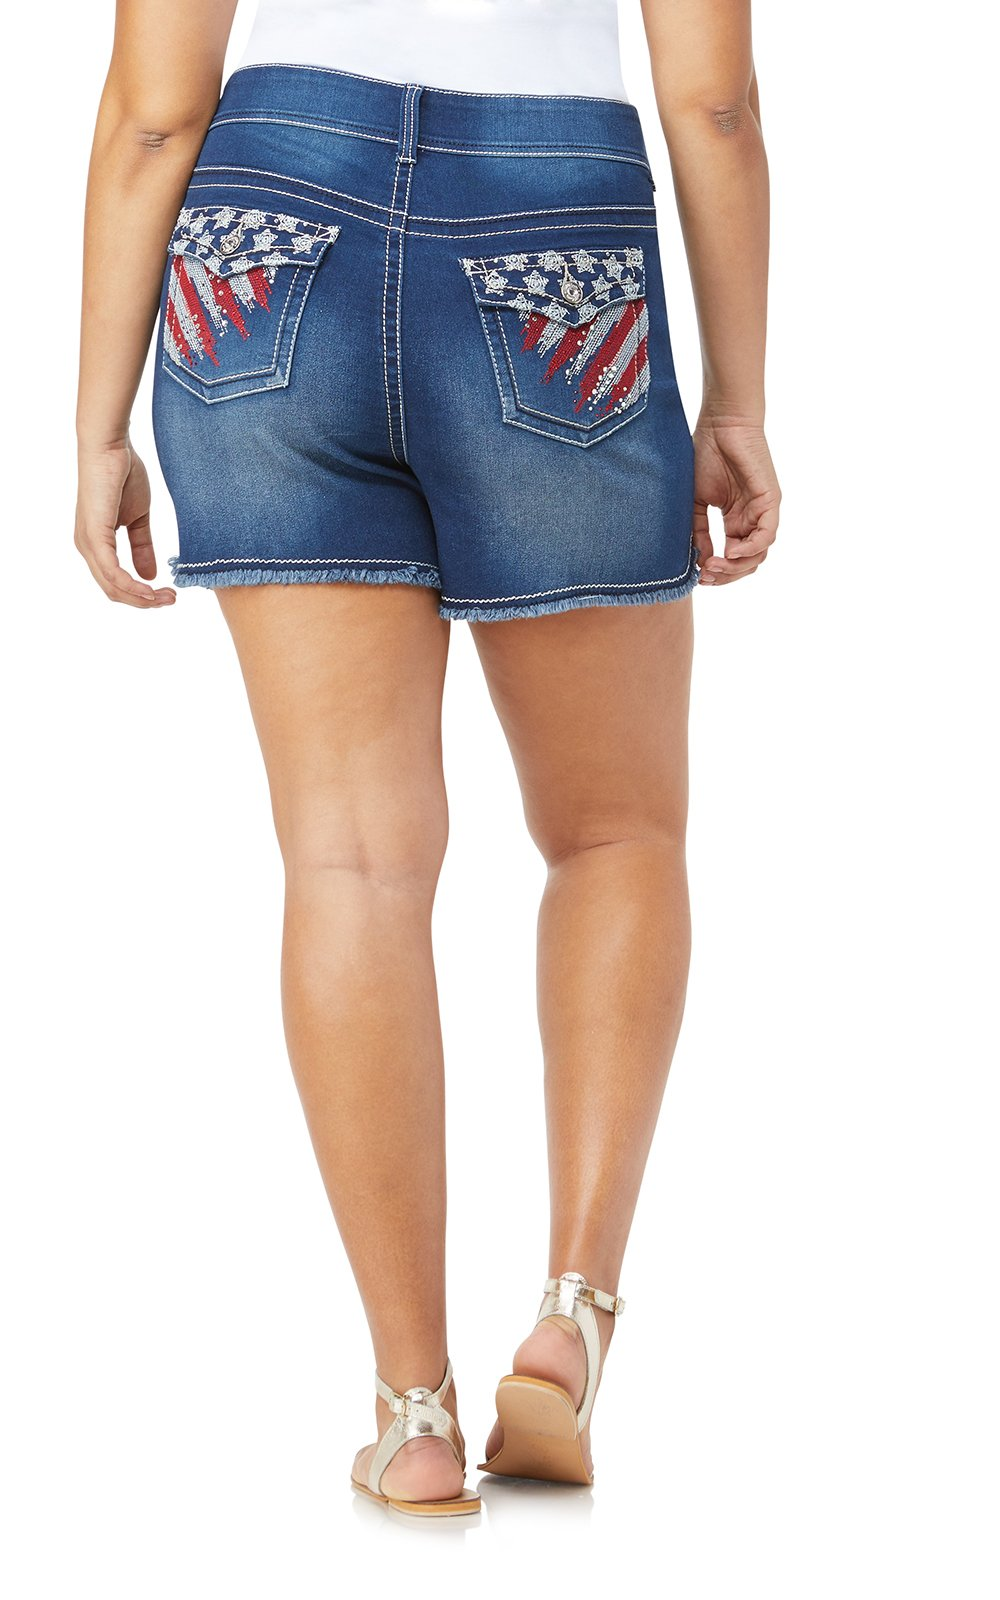 WallFlower Women's Plus Size Bling Luscious Curvy Americana Denim Shorts in Nicki, 18 Plus